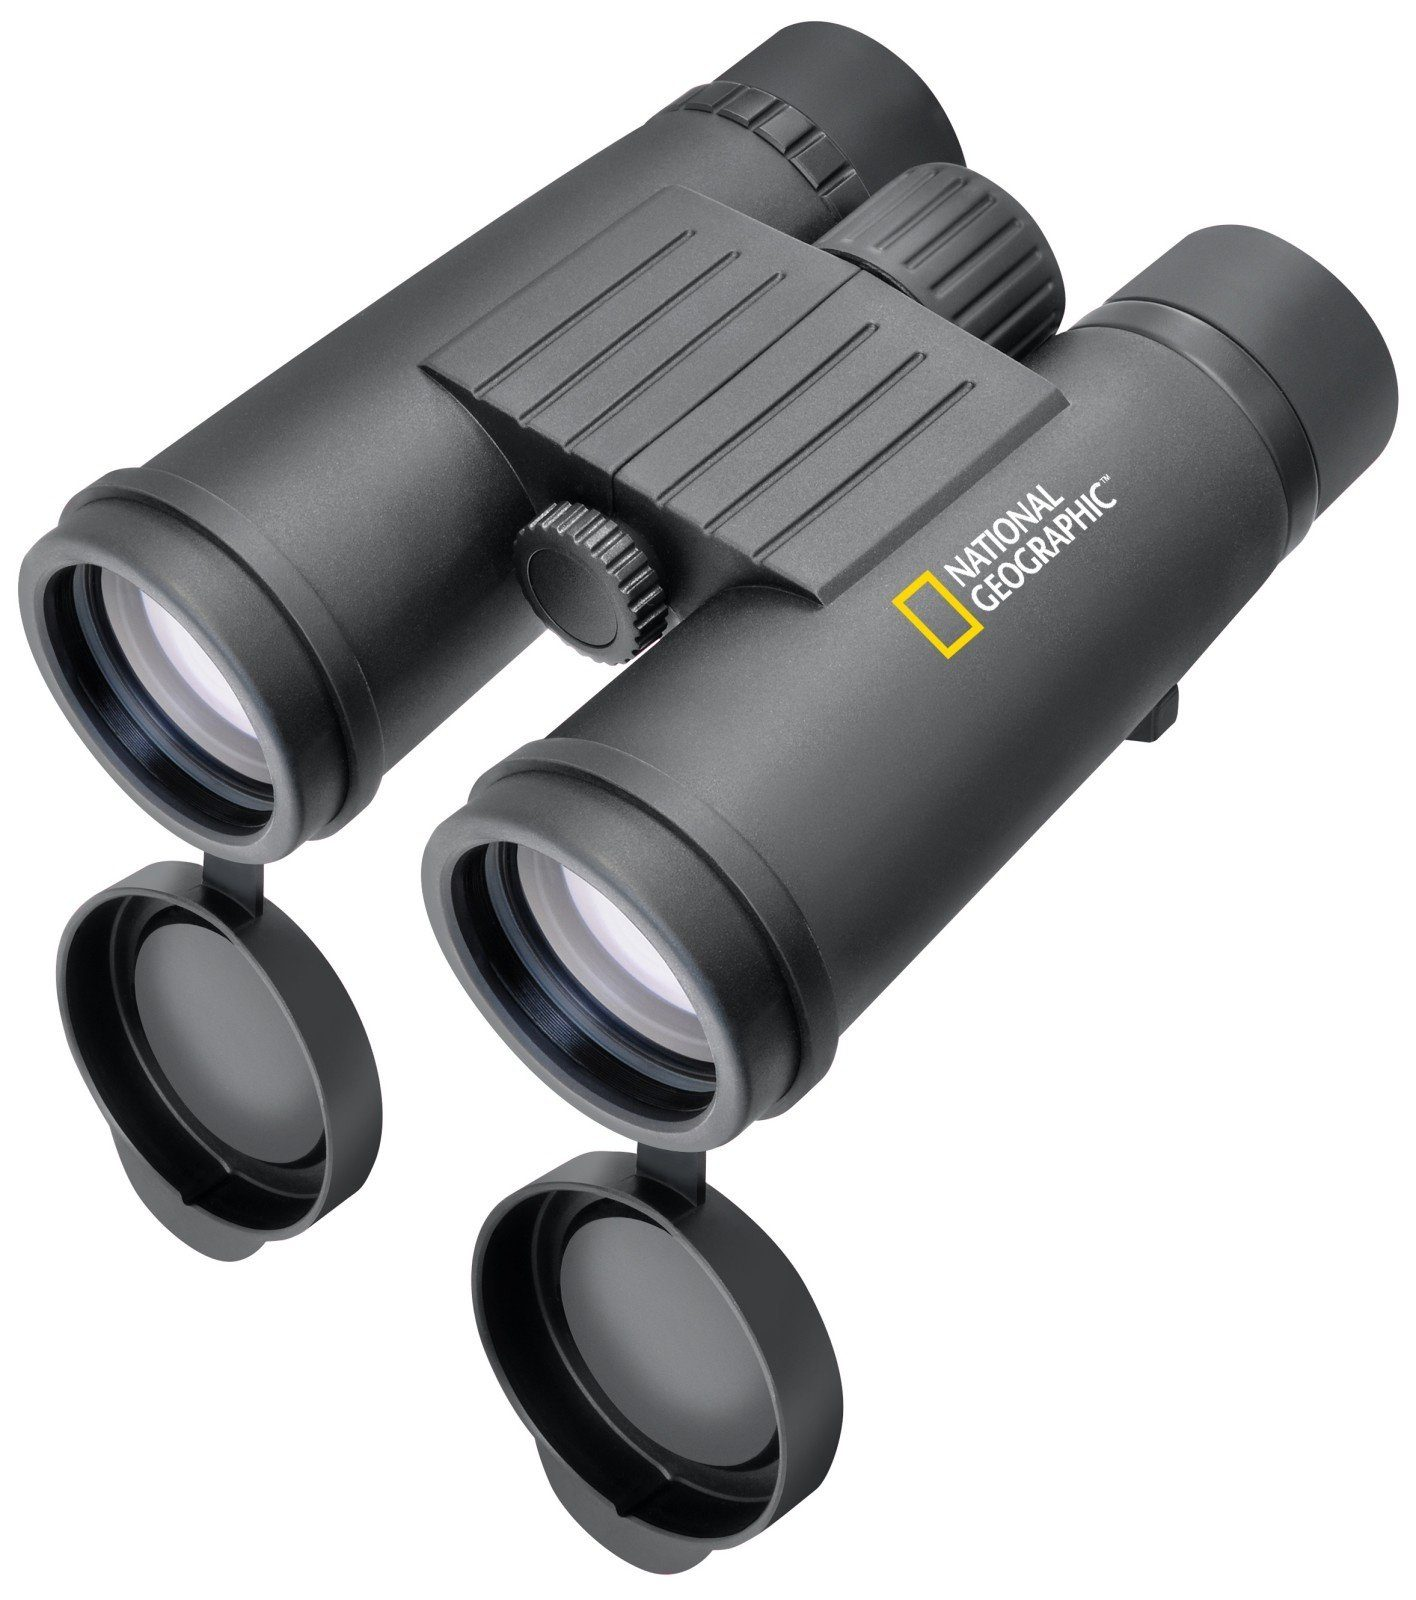 National Geographic Fernglas »8x42 WP Fernglas«